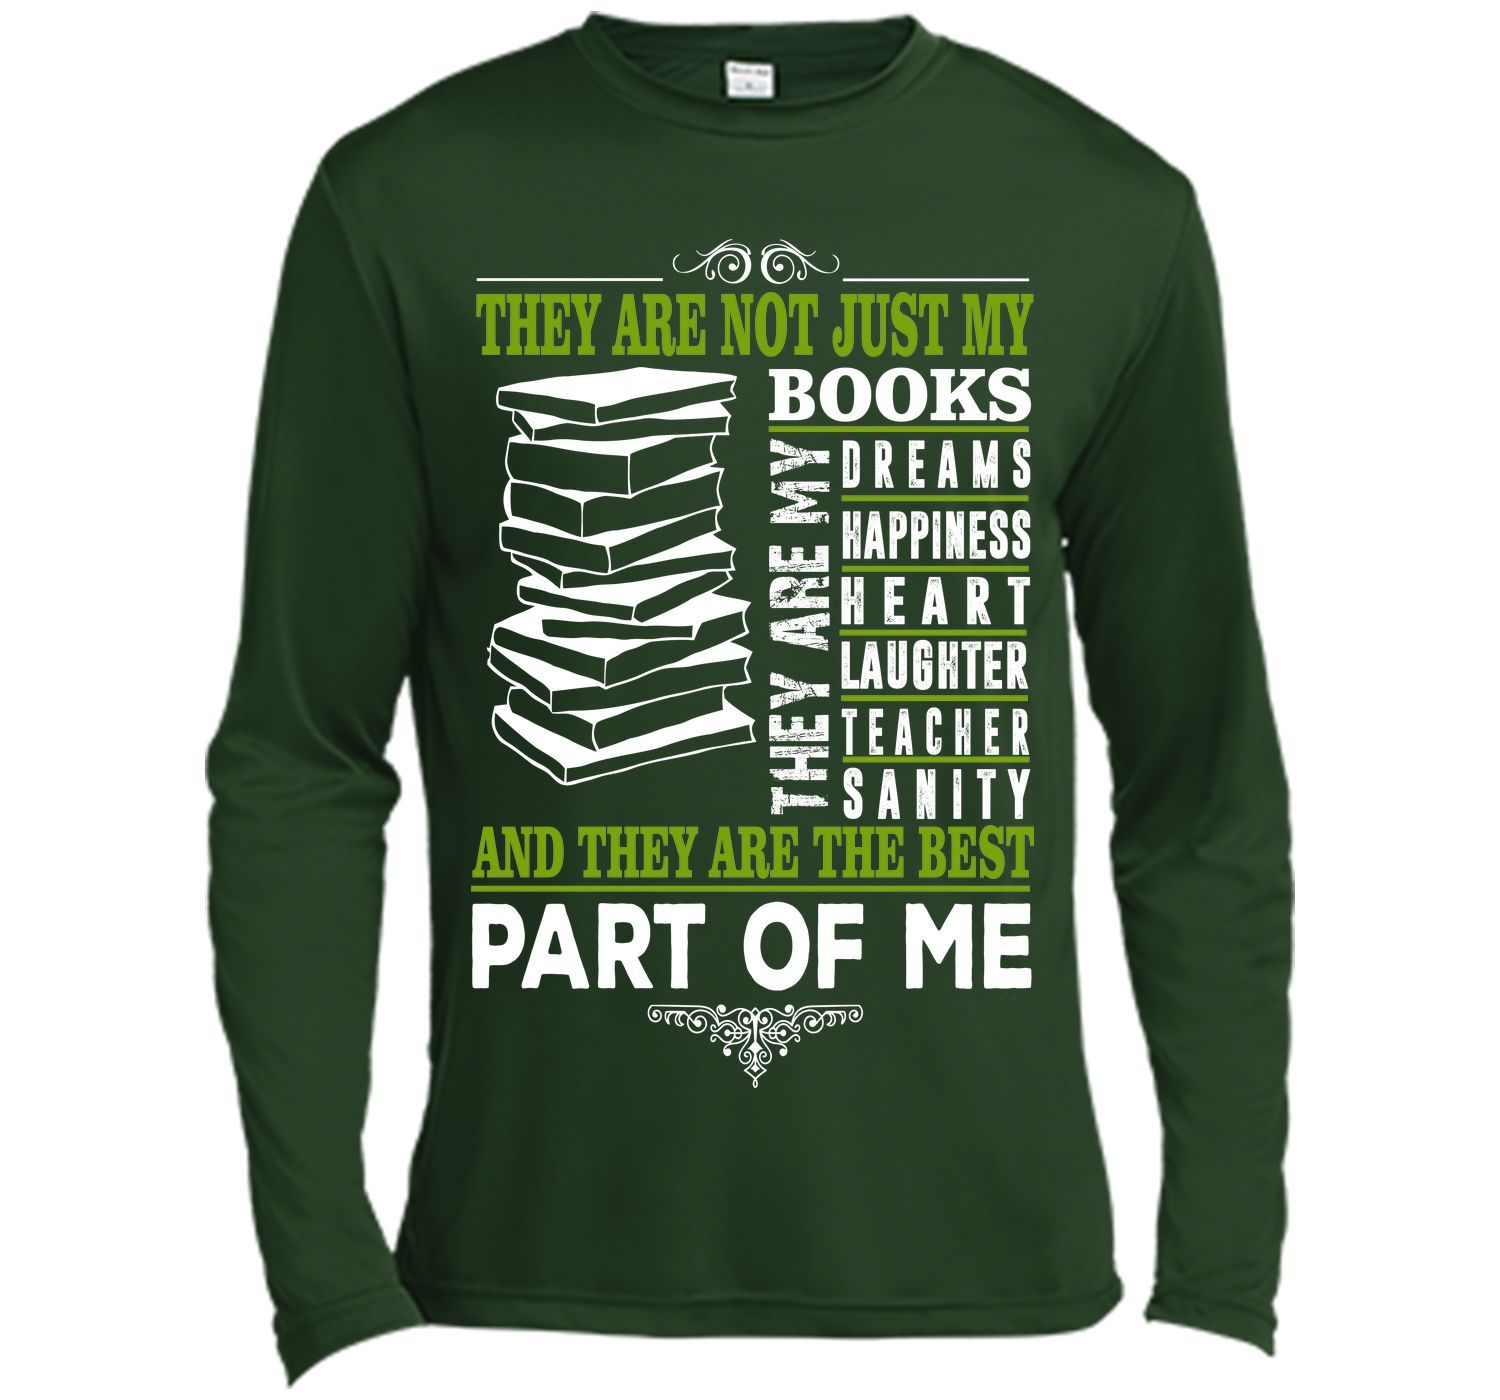 They are not just my books T-Shirt